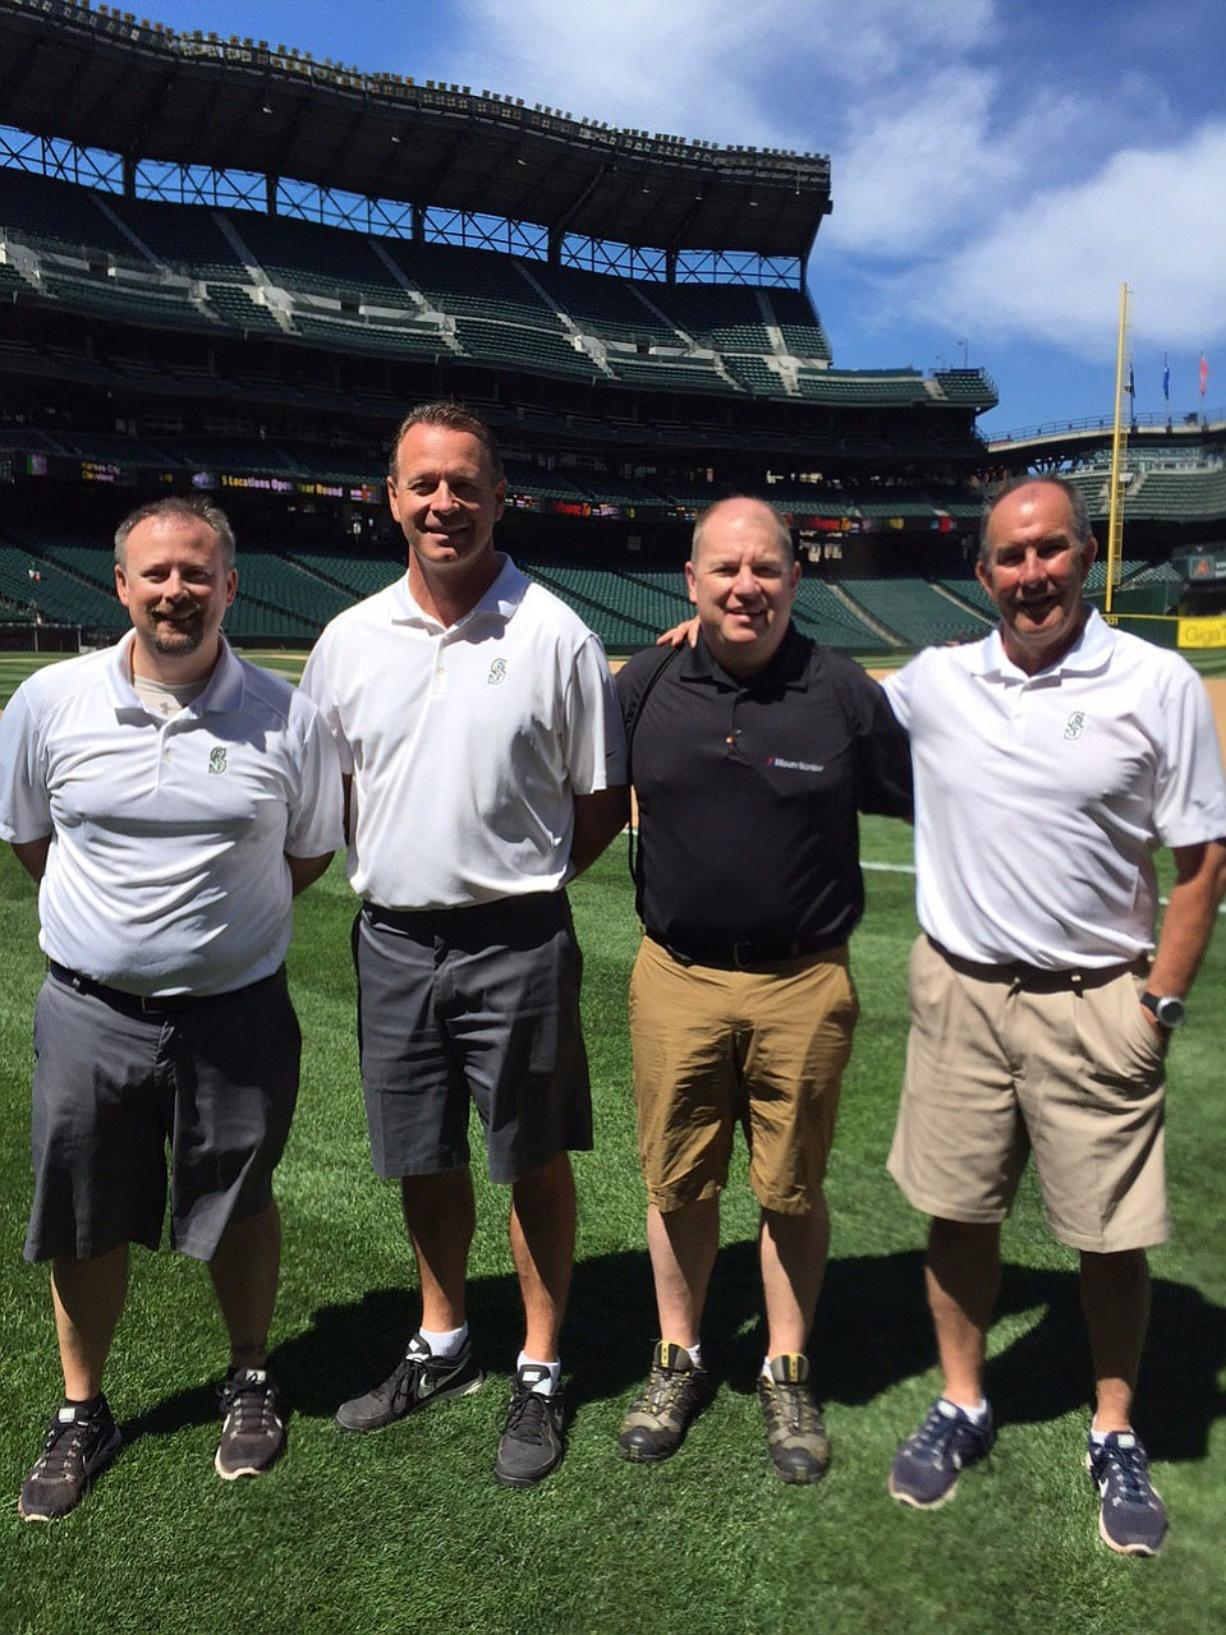 East Vancouver: Brian Apling, black shirt, joined trainers from the Seattle Mariners at Safeco Field on July 28 to talk to children as part of Professional Baseball Athletic Trainers Society's PLAY Campaign.